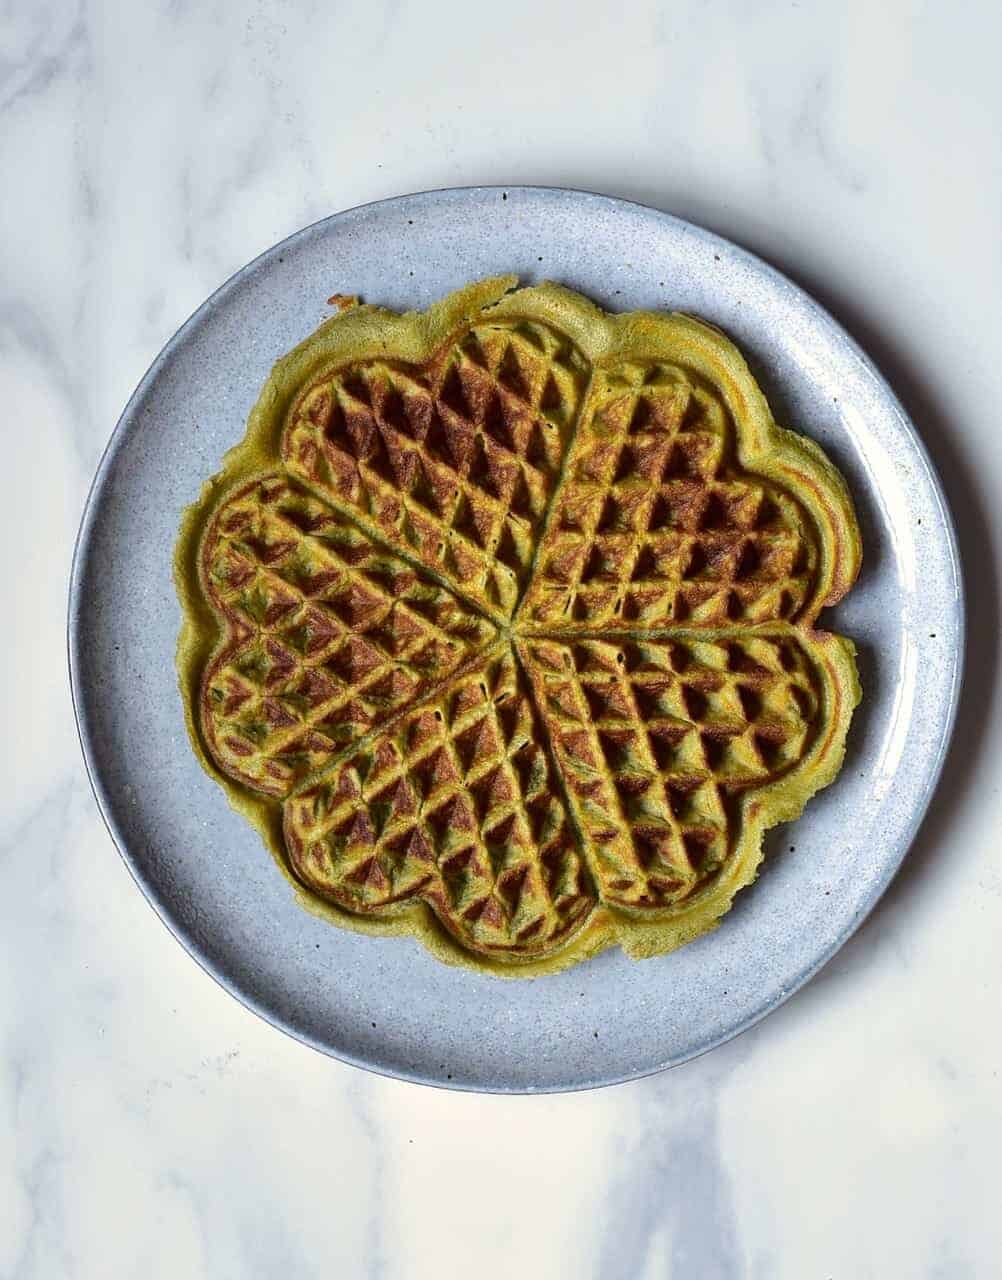 A green matcha waffle served in a plate